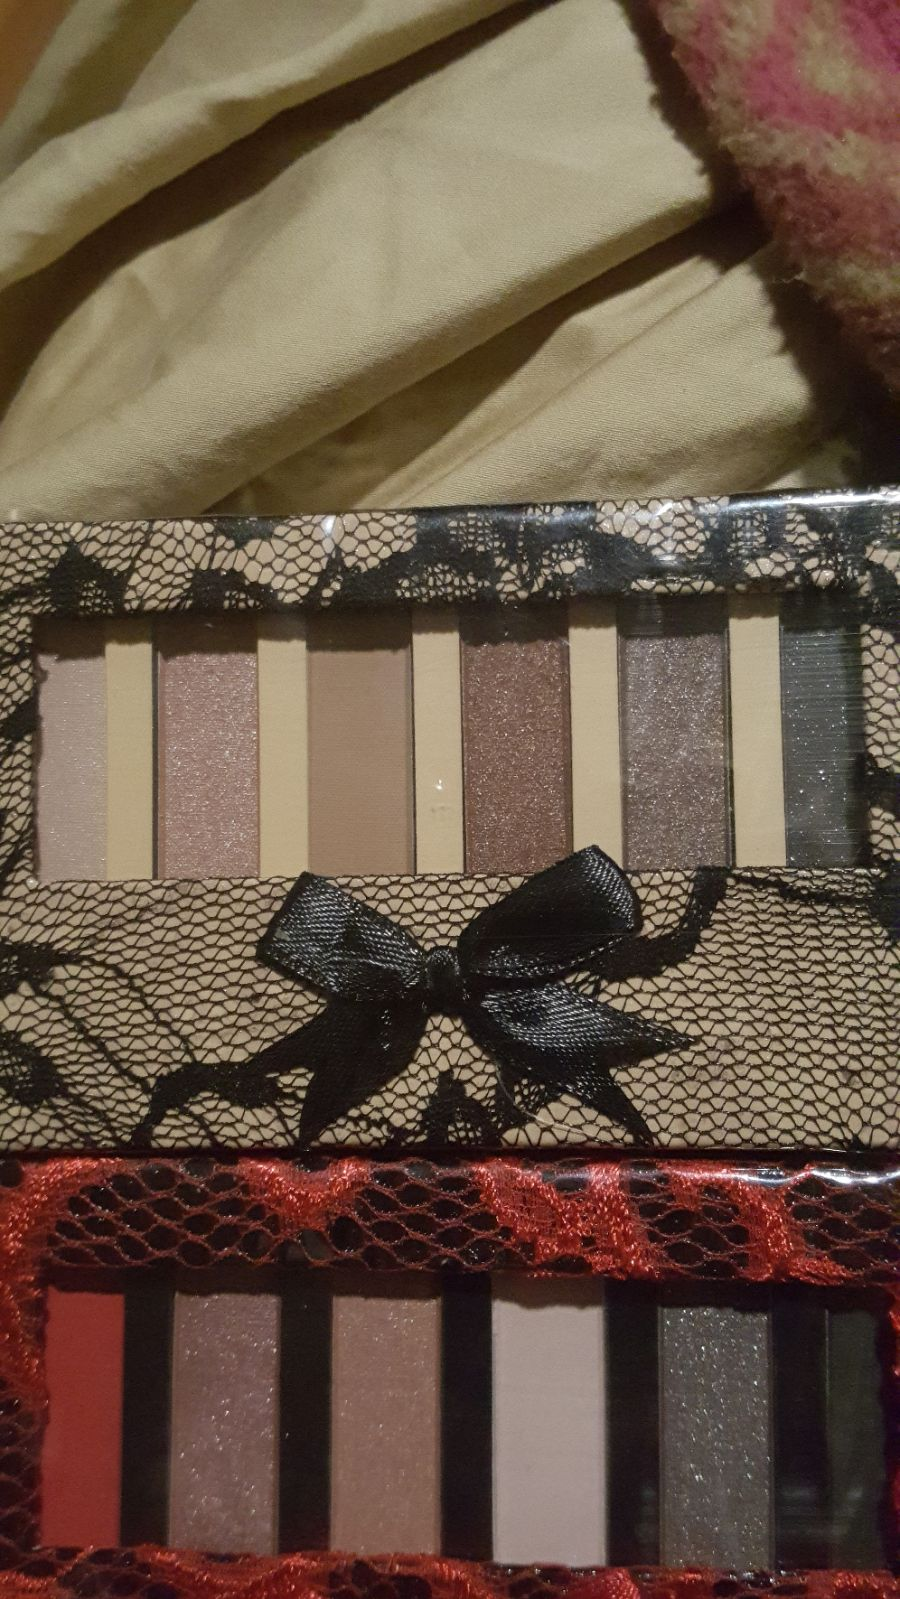 2 eyeshadow palettes by Bronx Colors